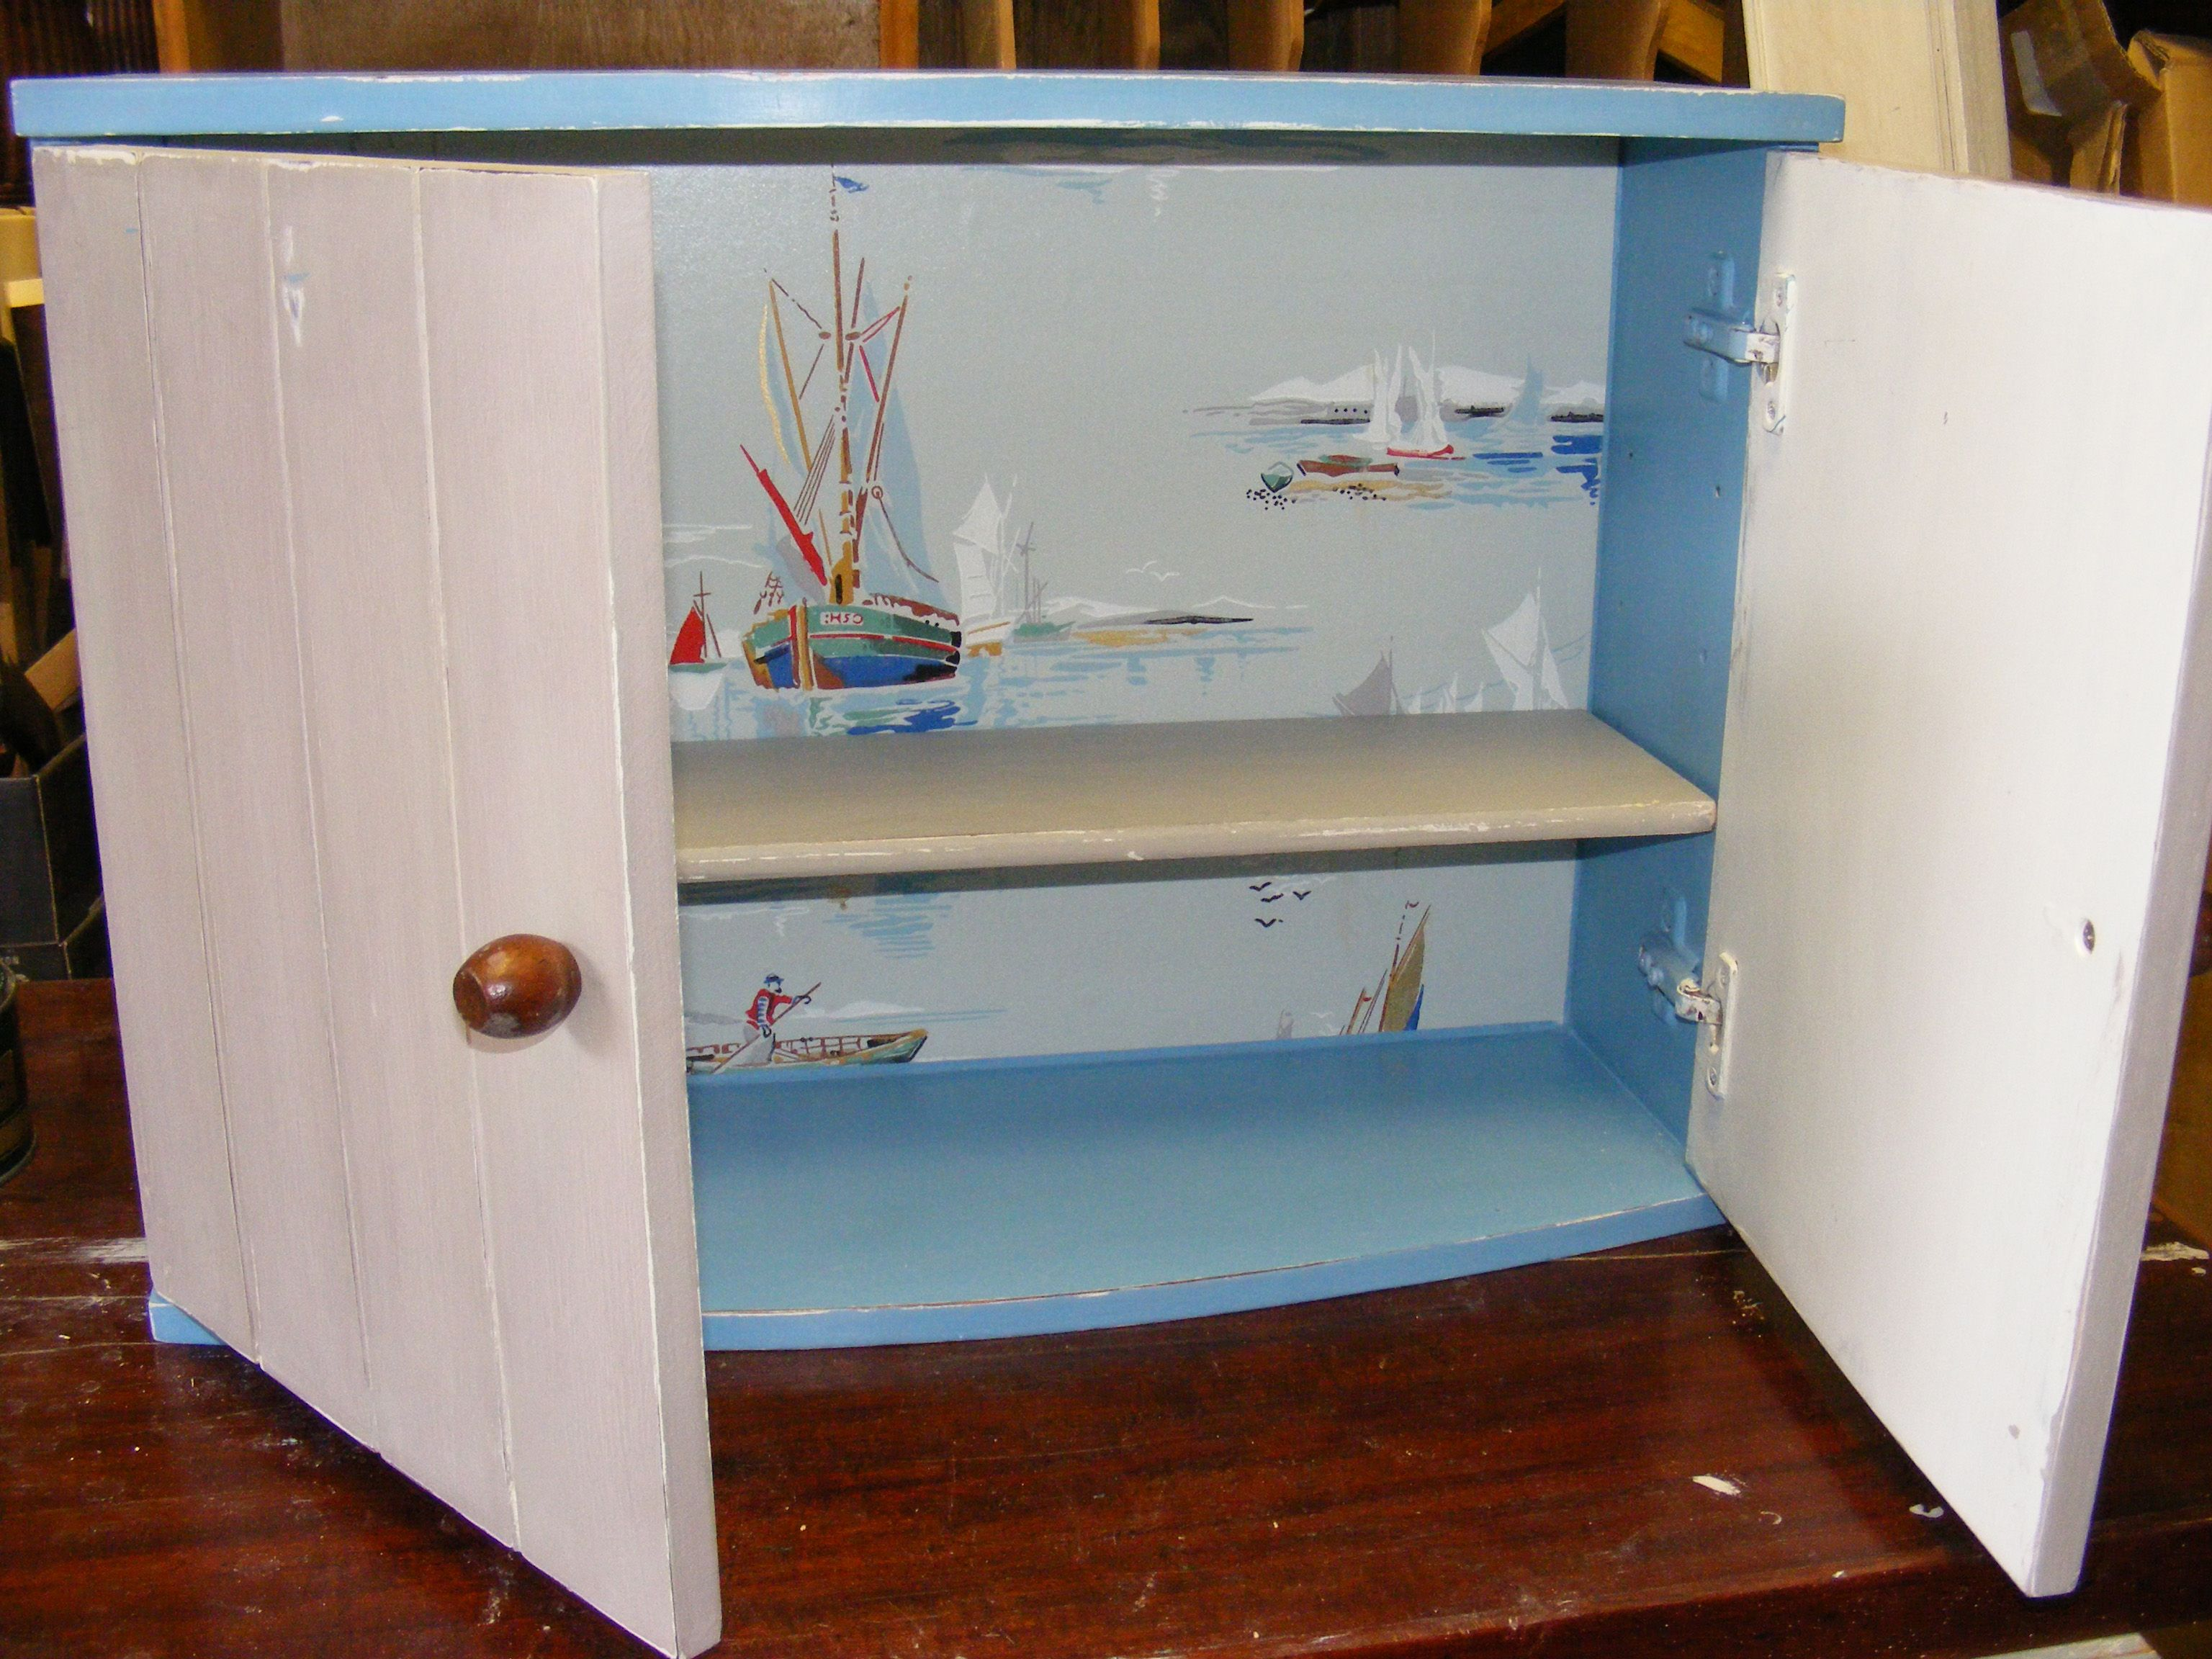 Repainted dark wood bathroom cabinet. Chose boat themed vintage wall paper to hide inside. I would hang this in my beach hut if I had one. I made this on a rainy day 17 miles from the nearest beach. (Charmouth)